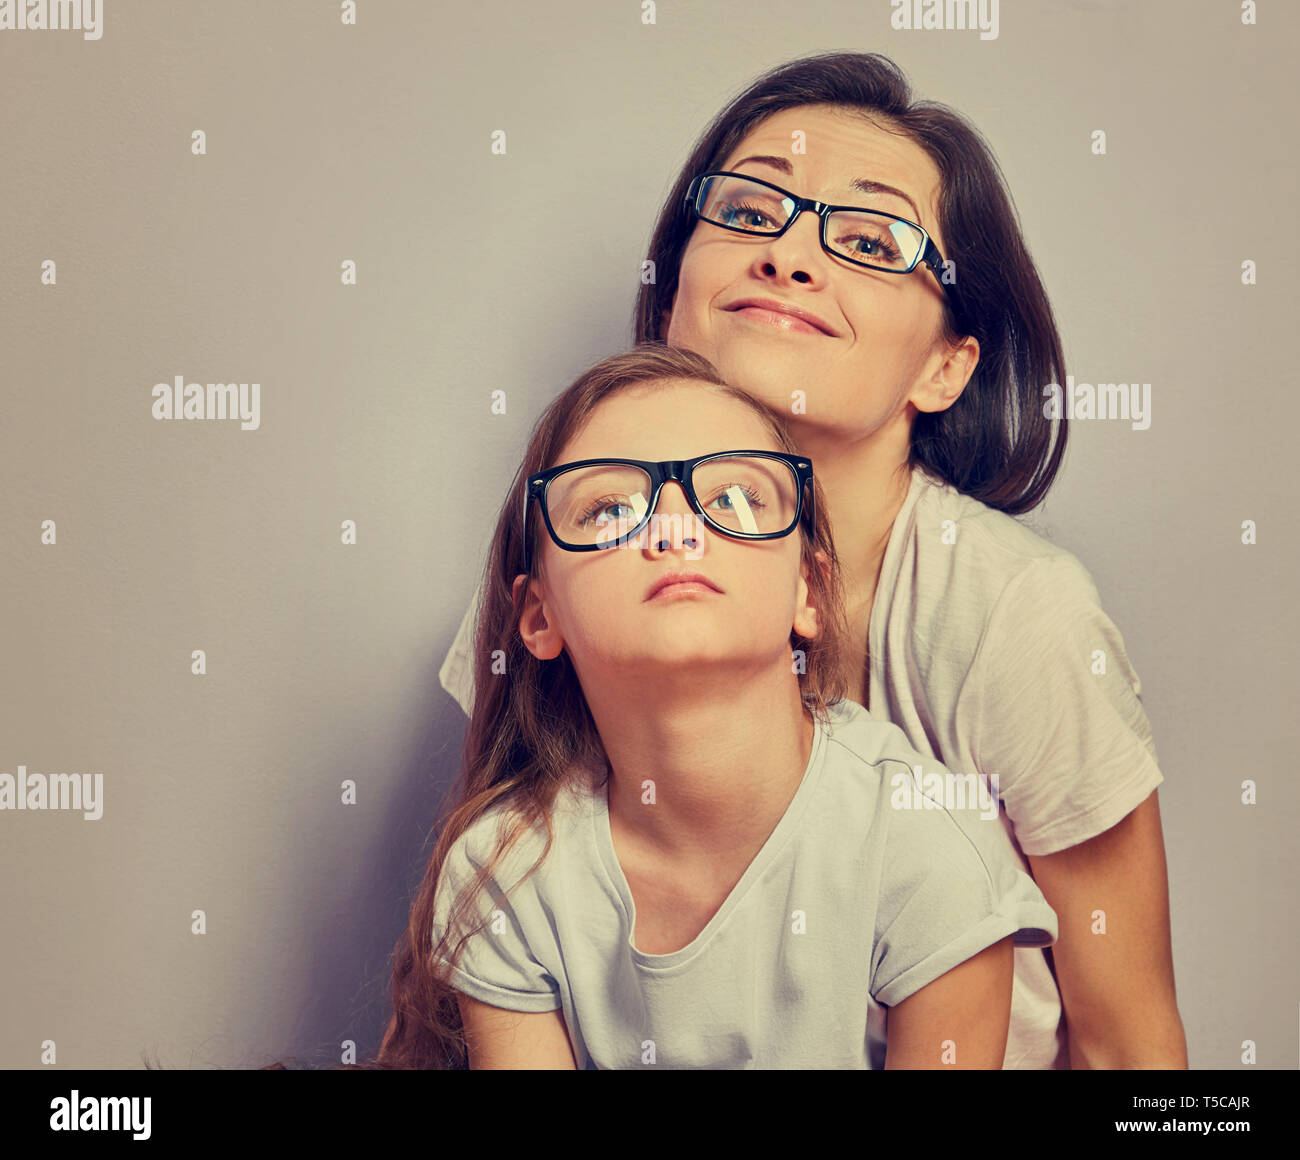 Grimacing positive smiling casual mother looking sitting with her unhappy offended thinking kid girl on violet wall background. Family in fashion eye  - Stock Image